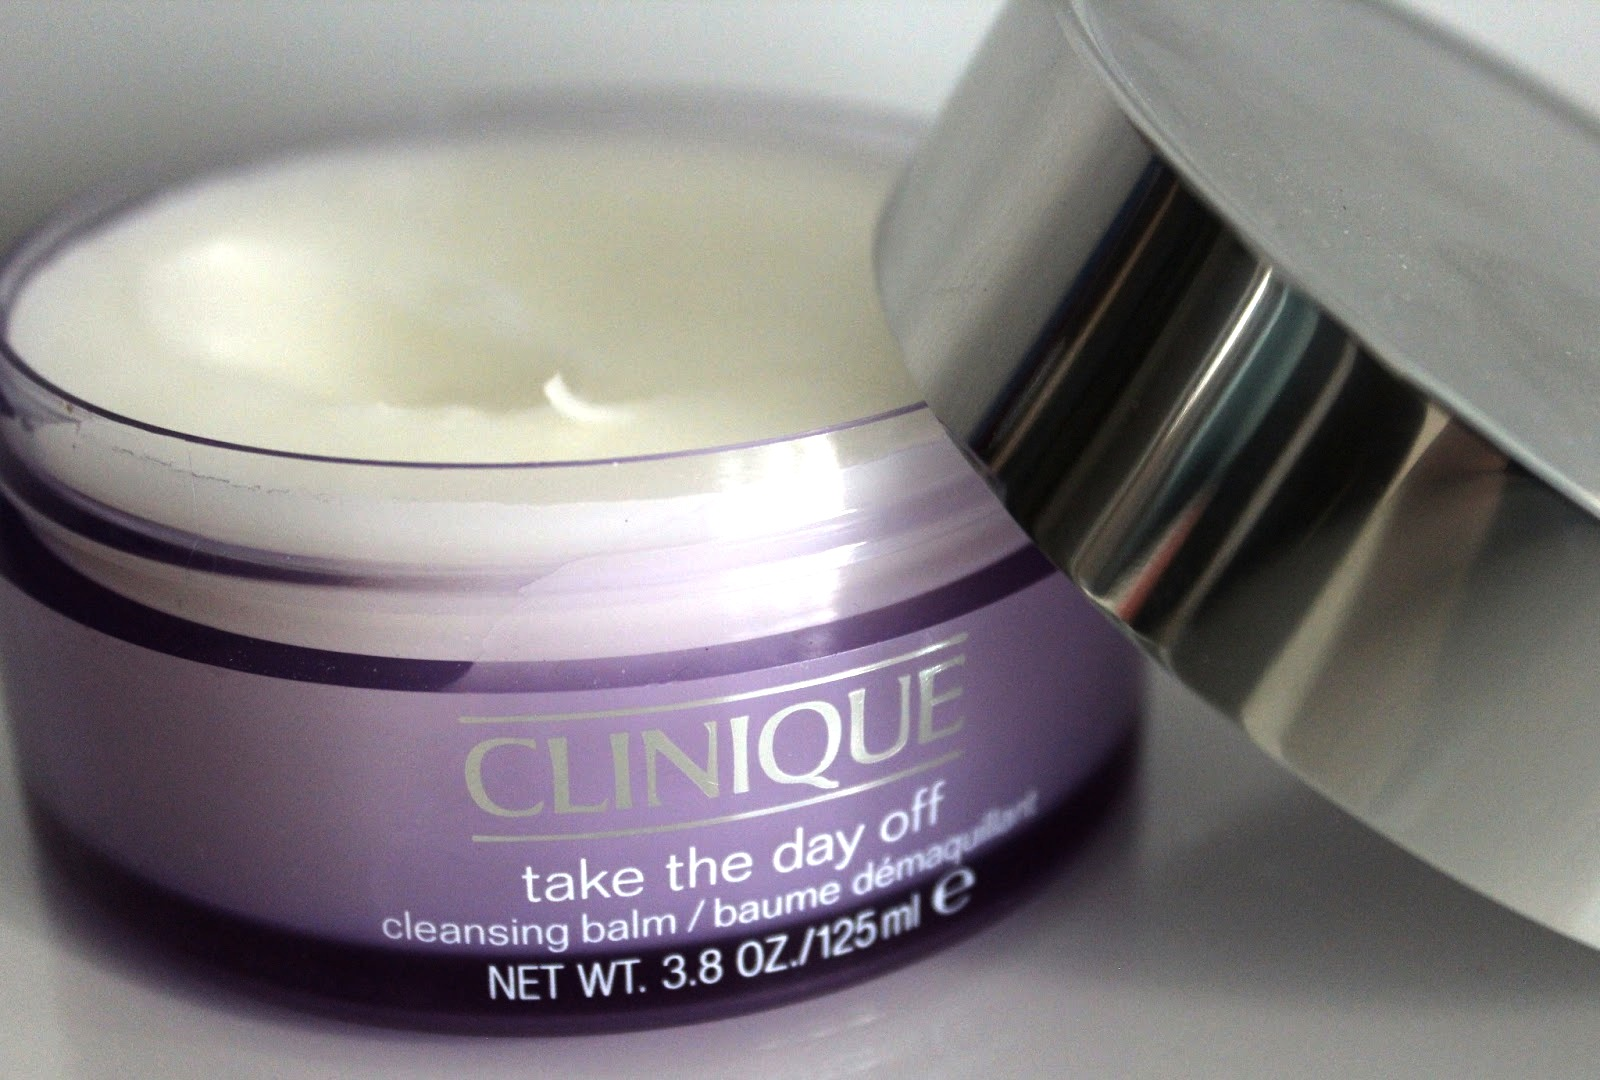 clinique-take-the-day-off-cleansing-balm-an-emma-hardie-dupe